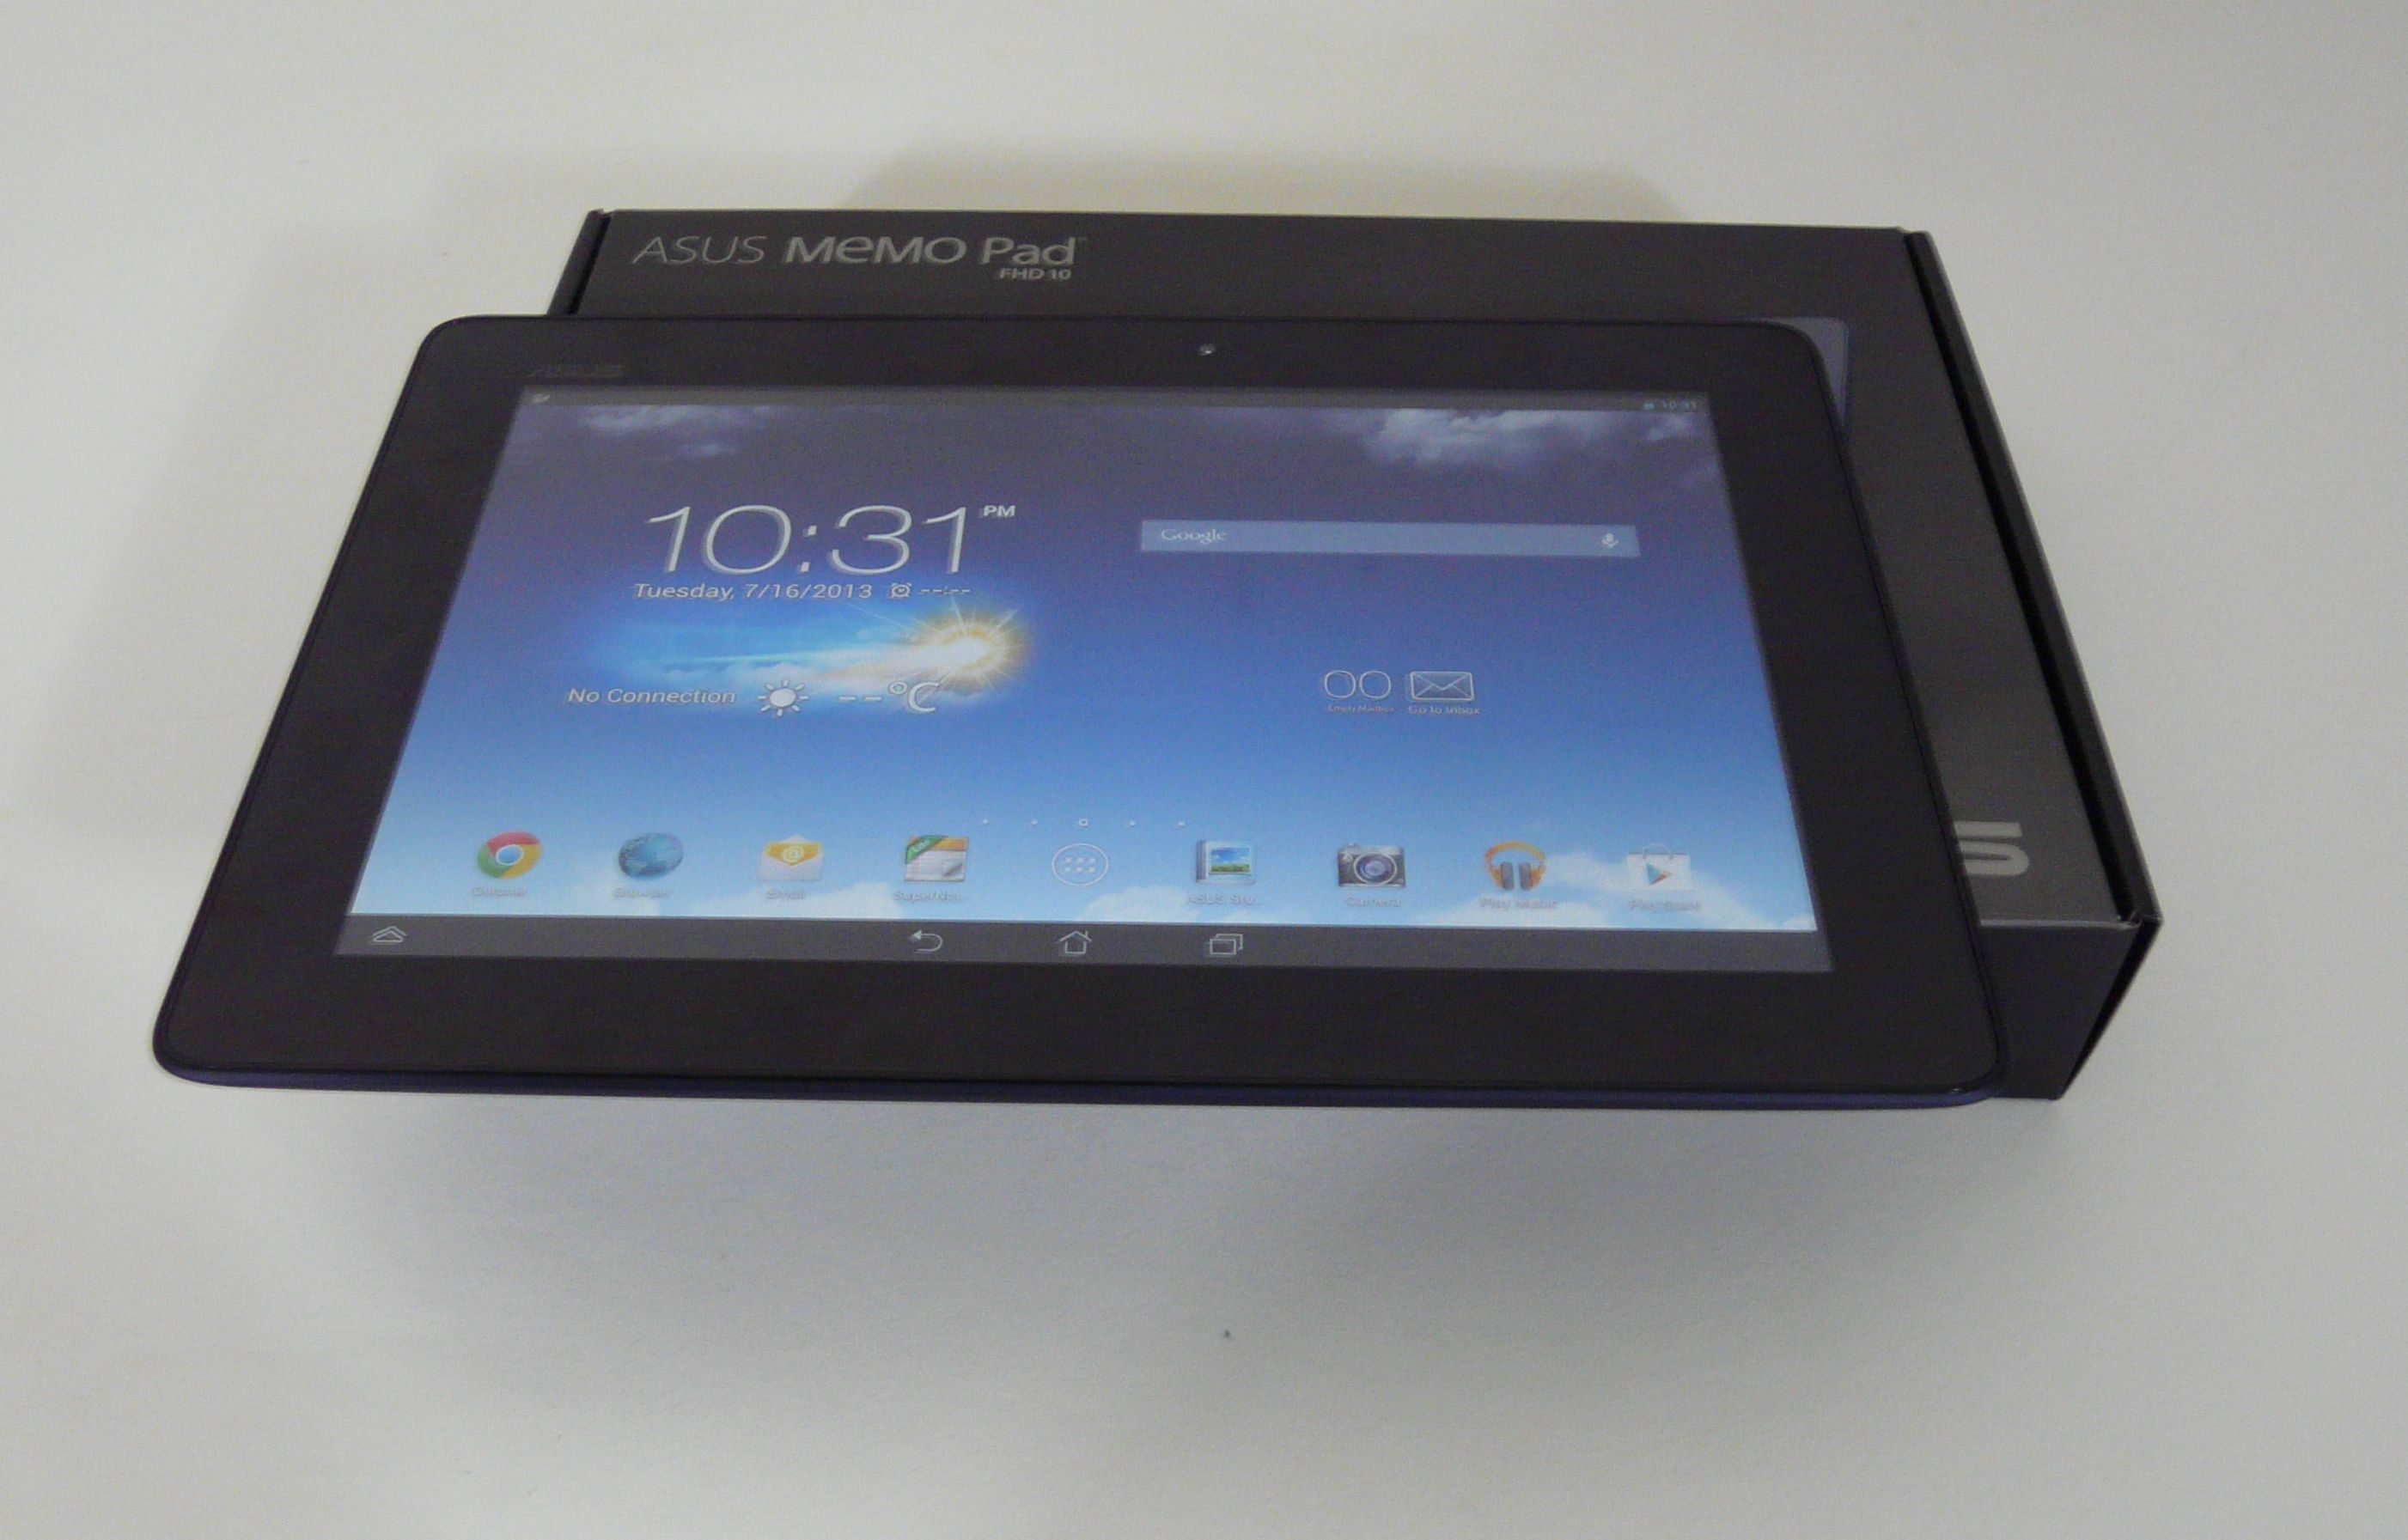 Asus Memo Pad Fhd 10 Unboxing 101 Inch Midrange Slate Gets Unboxed Usb Cable Wiring Diagram Only Includes A Charger And Plus Tiny Manual The Device Was Unveiled Early Next Month At Computex It Will Hit Stores In August